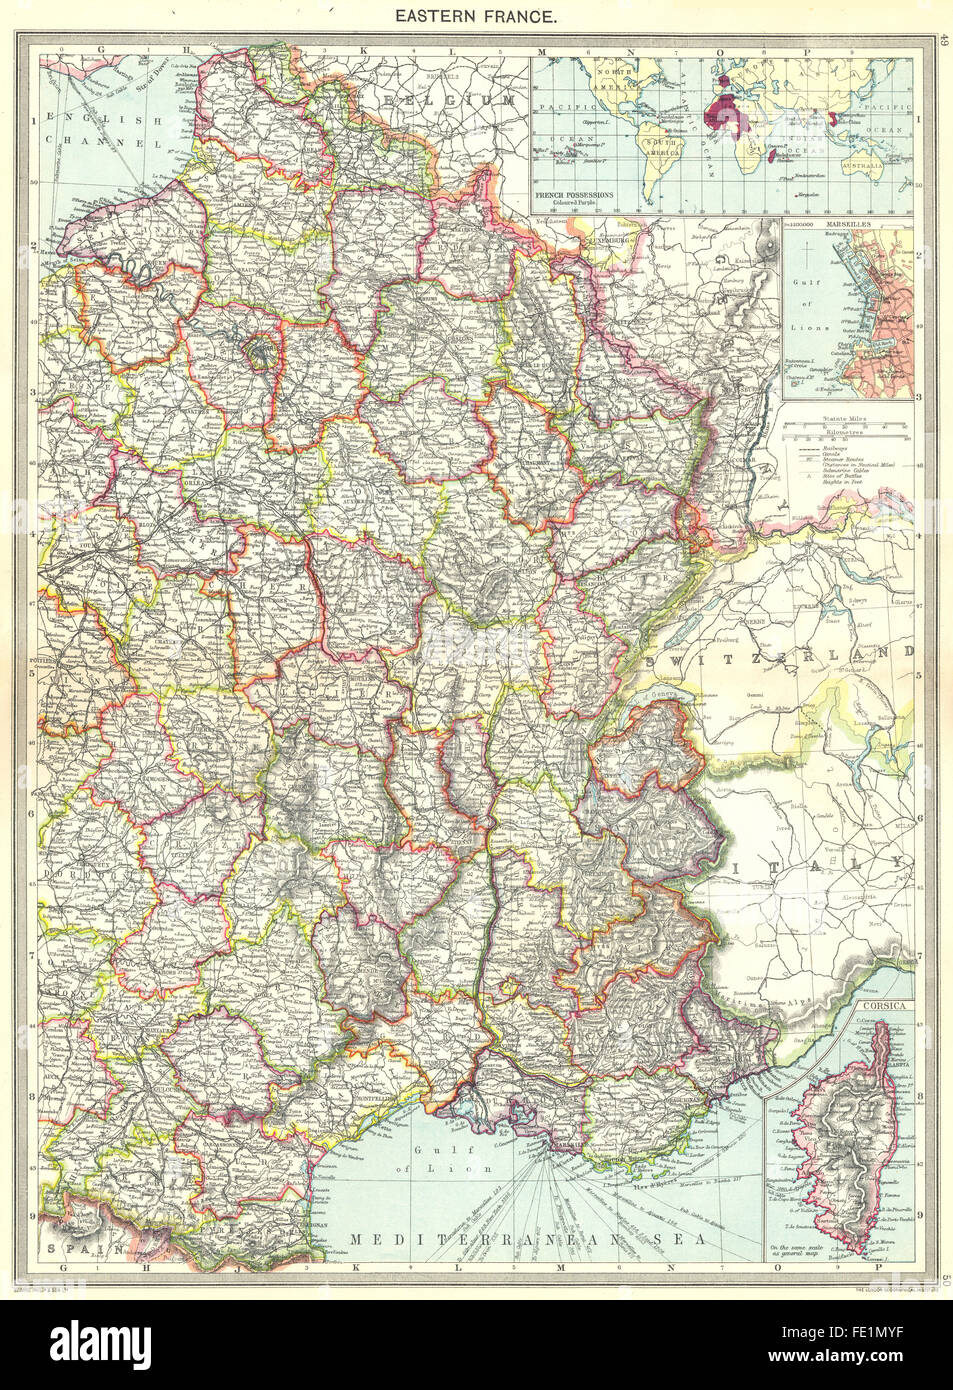 FRANCE: Eastern; maps of French Possessions; Marseilles; Corsica, 1907 - Stock Image